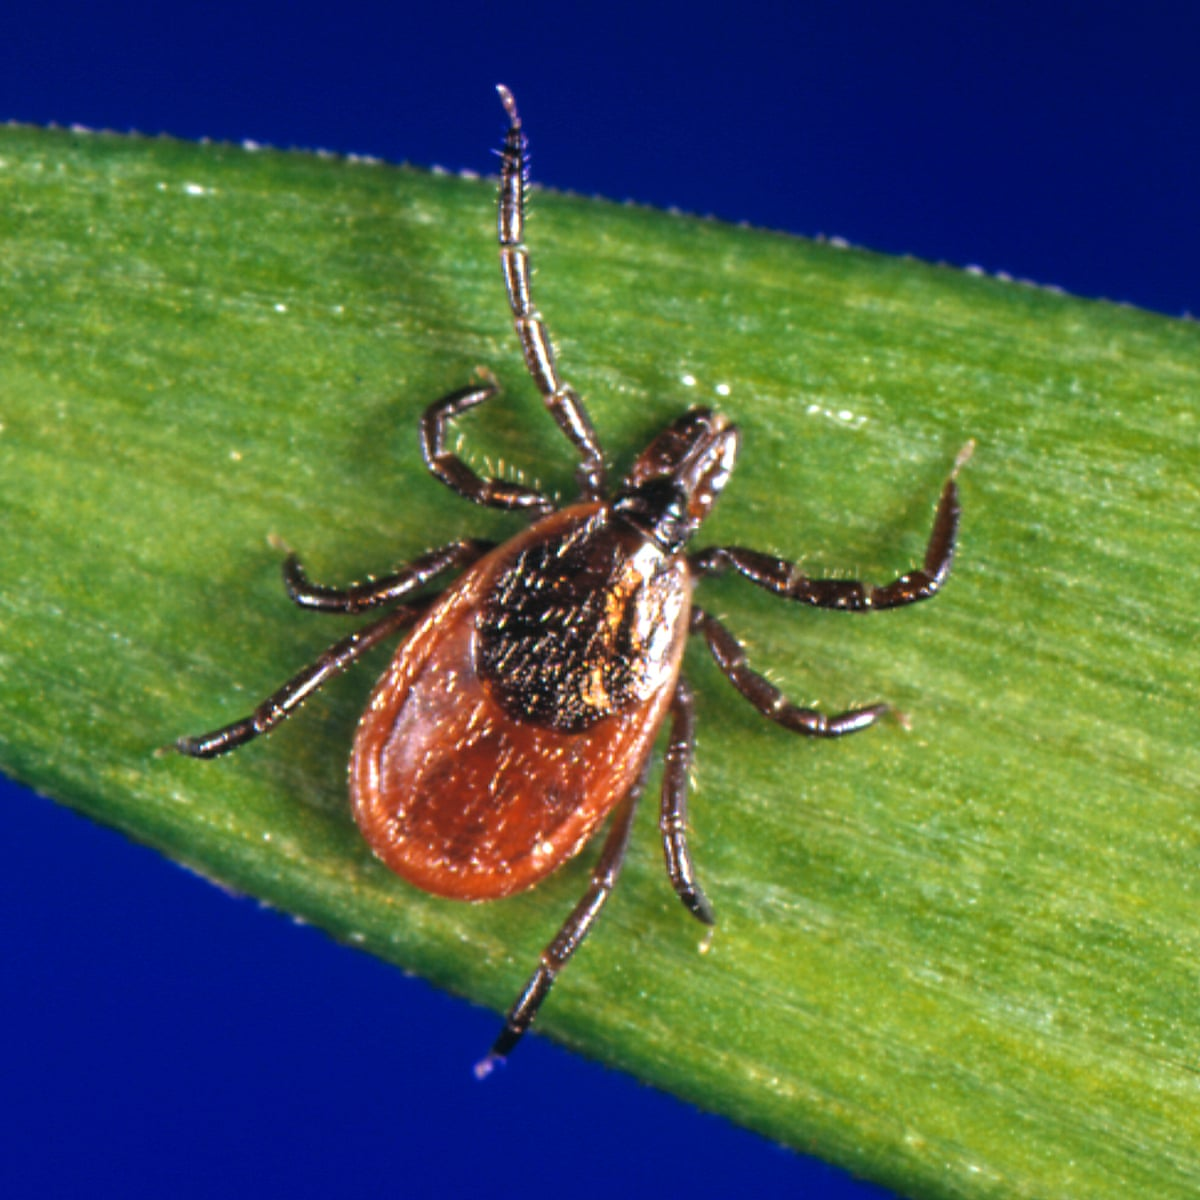 What should you do if you're bitten by a tick? | Health & wellbeing | The  Guardian